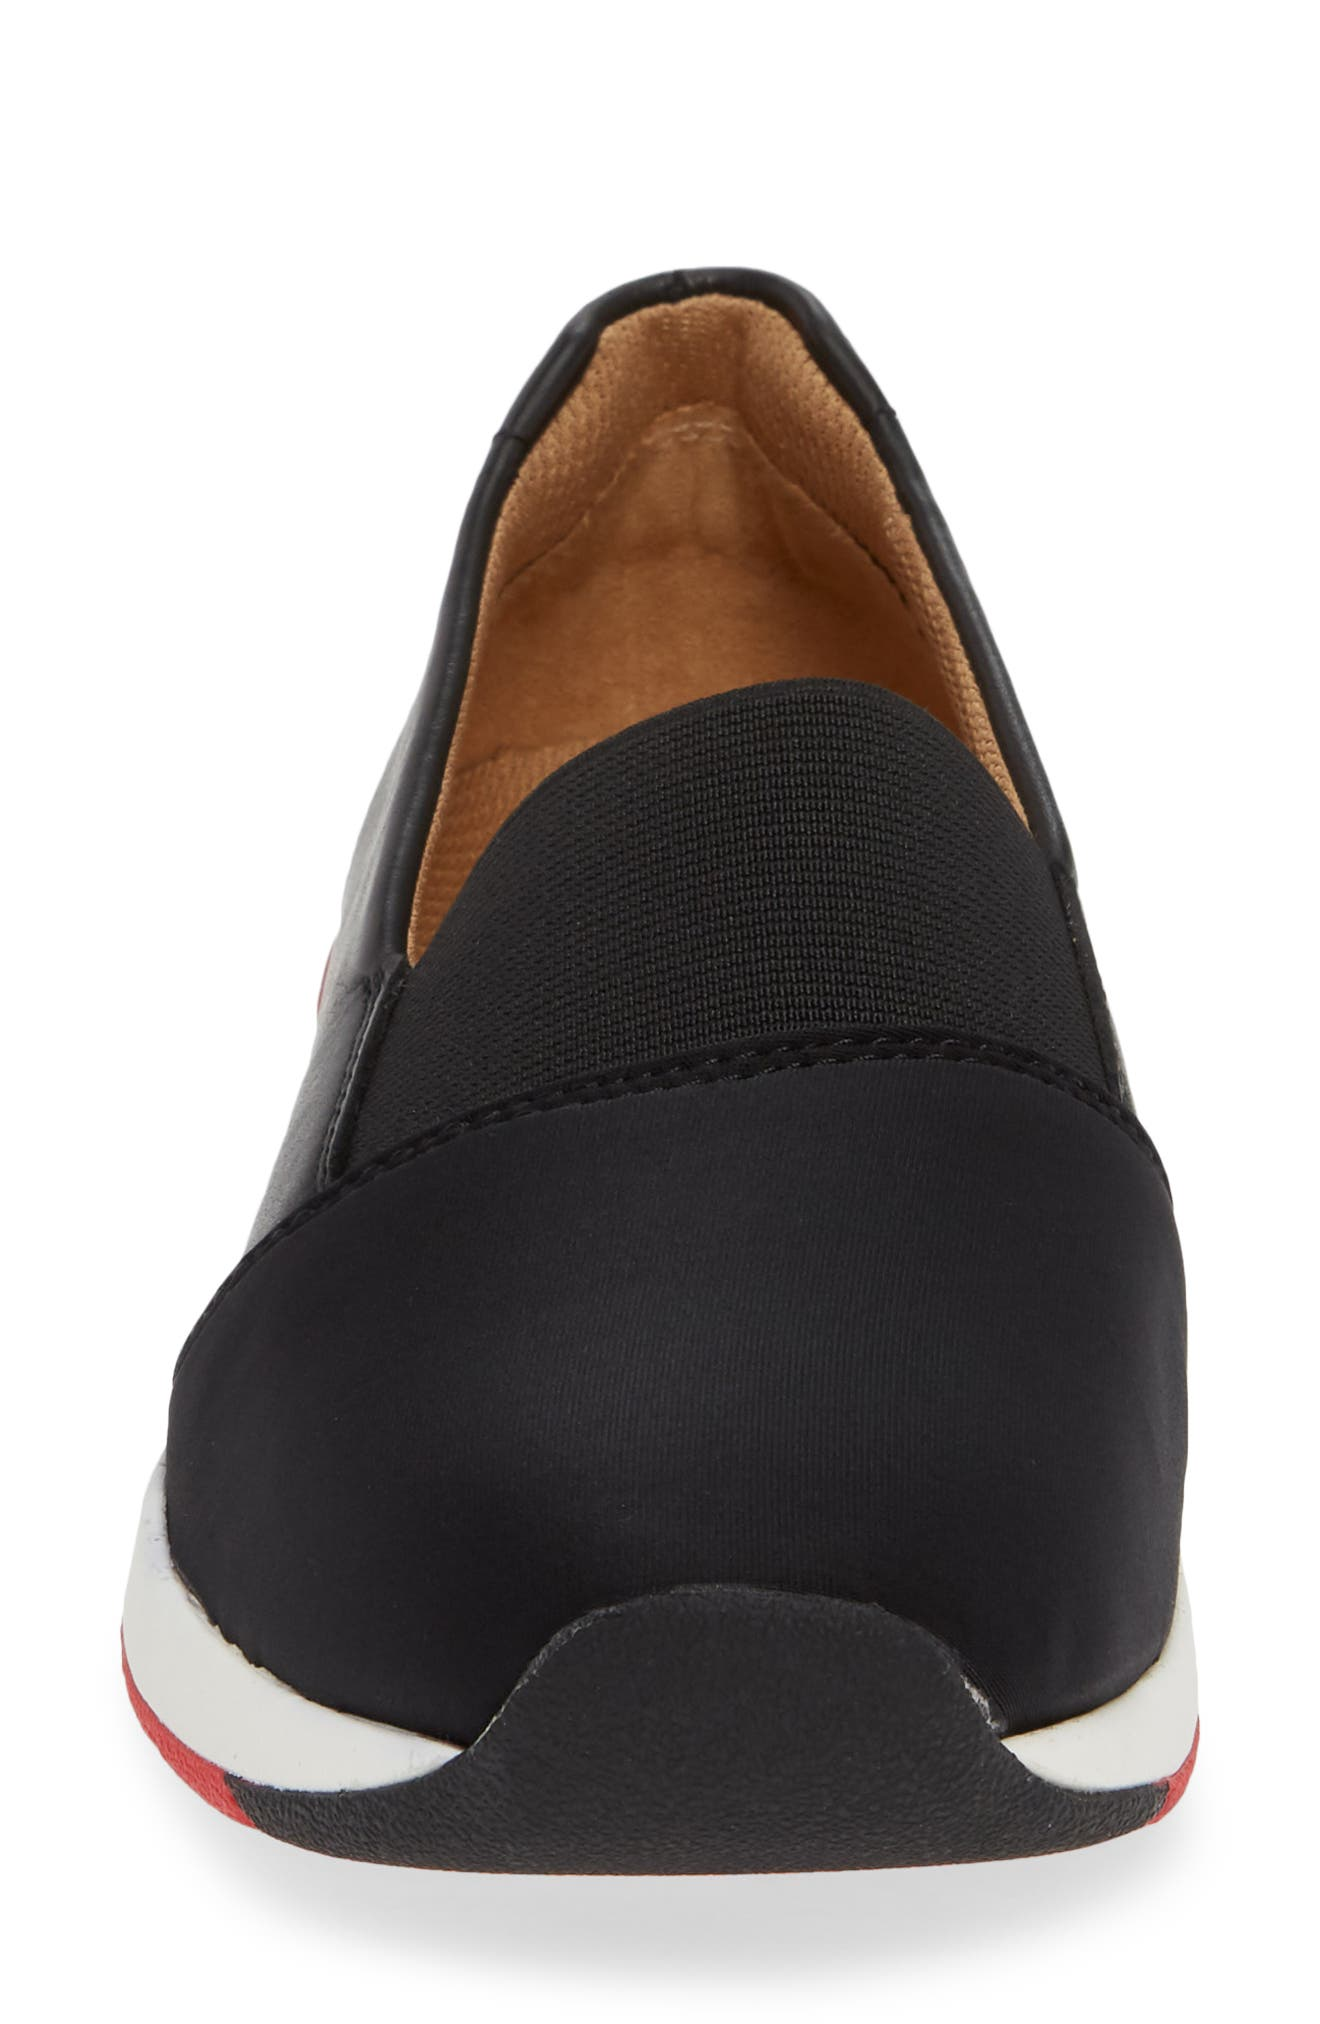 VIONIC, Cameo Slip-On Shoe, Alternate thumbnail 4, color, BLACK LEATHER NEOPRENE